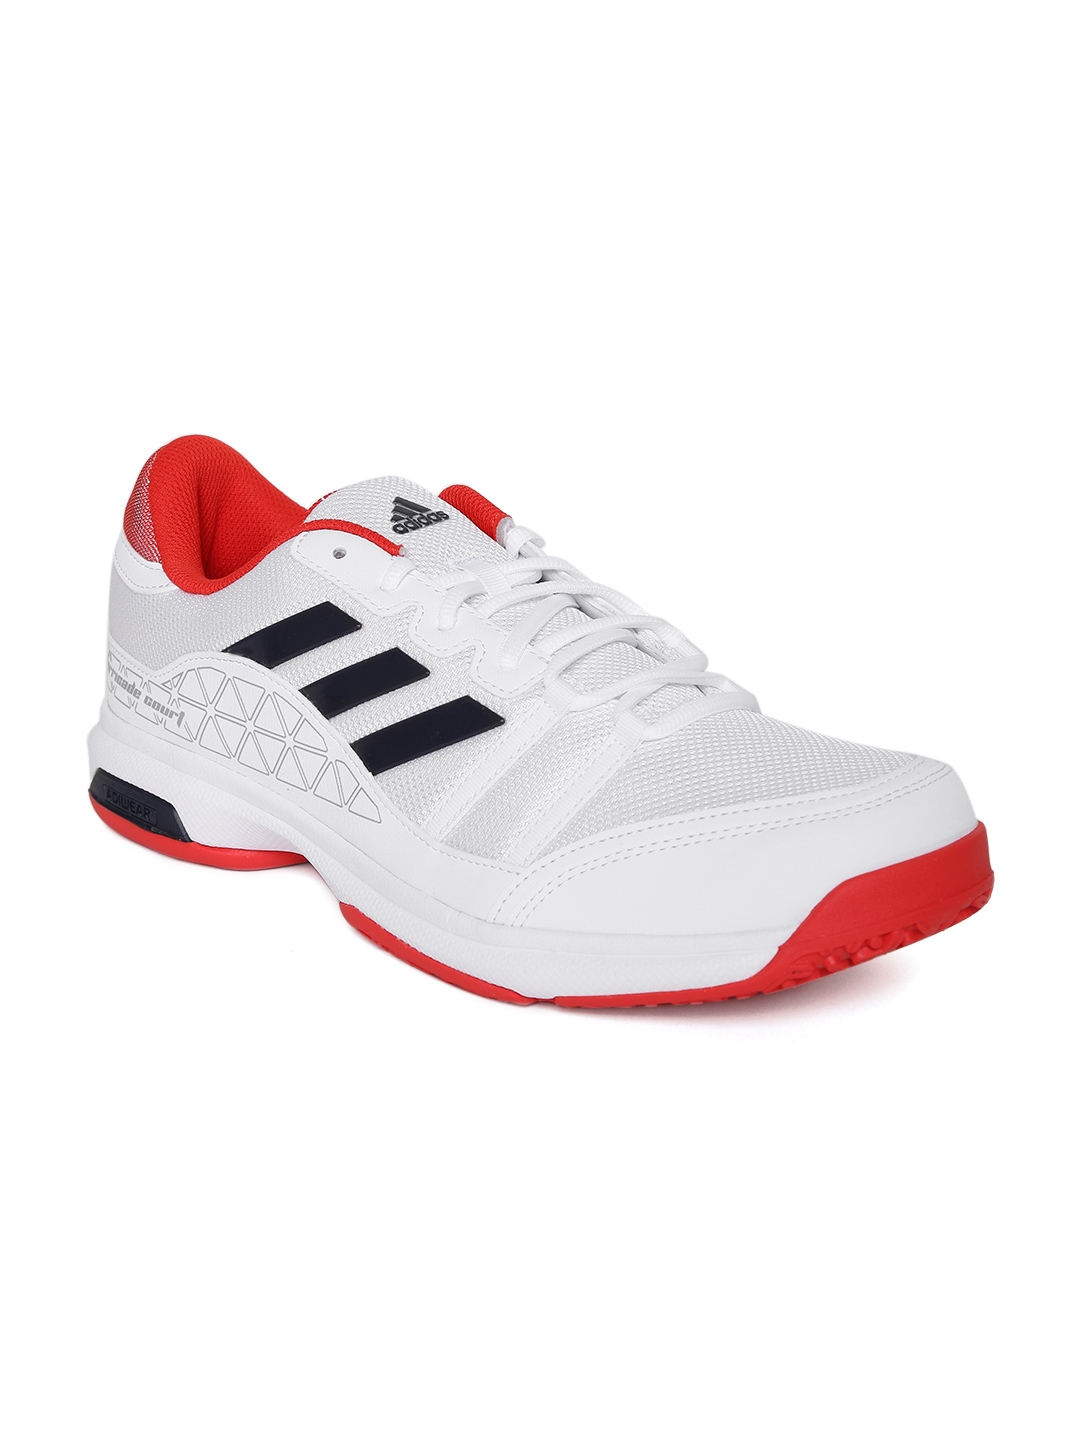 ab980799a3c Buy ADIDAS Unisex White Barricade Court OC Tennis Shoes - Sports ...